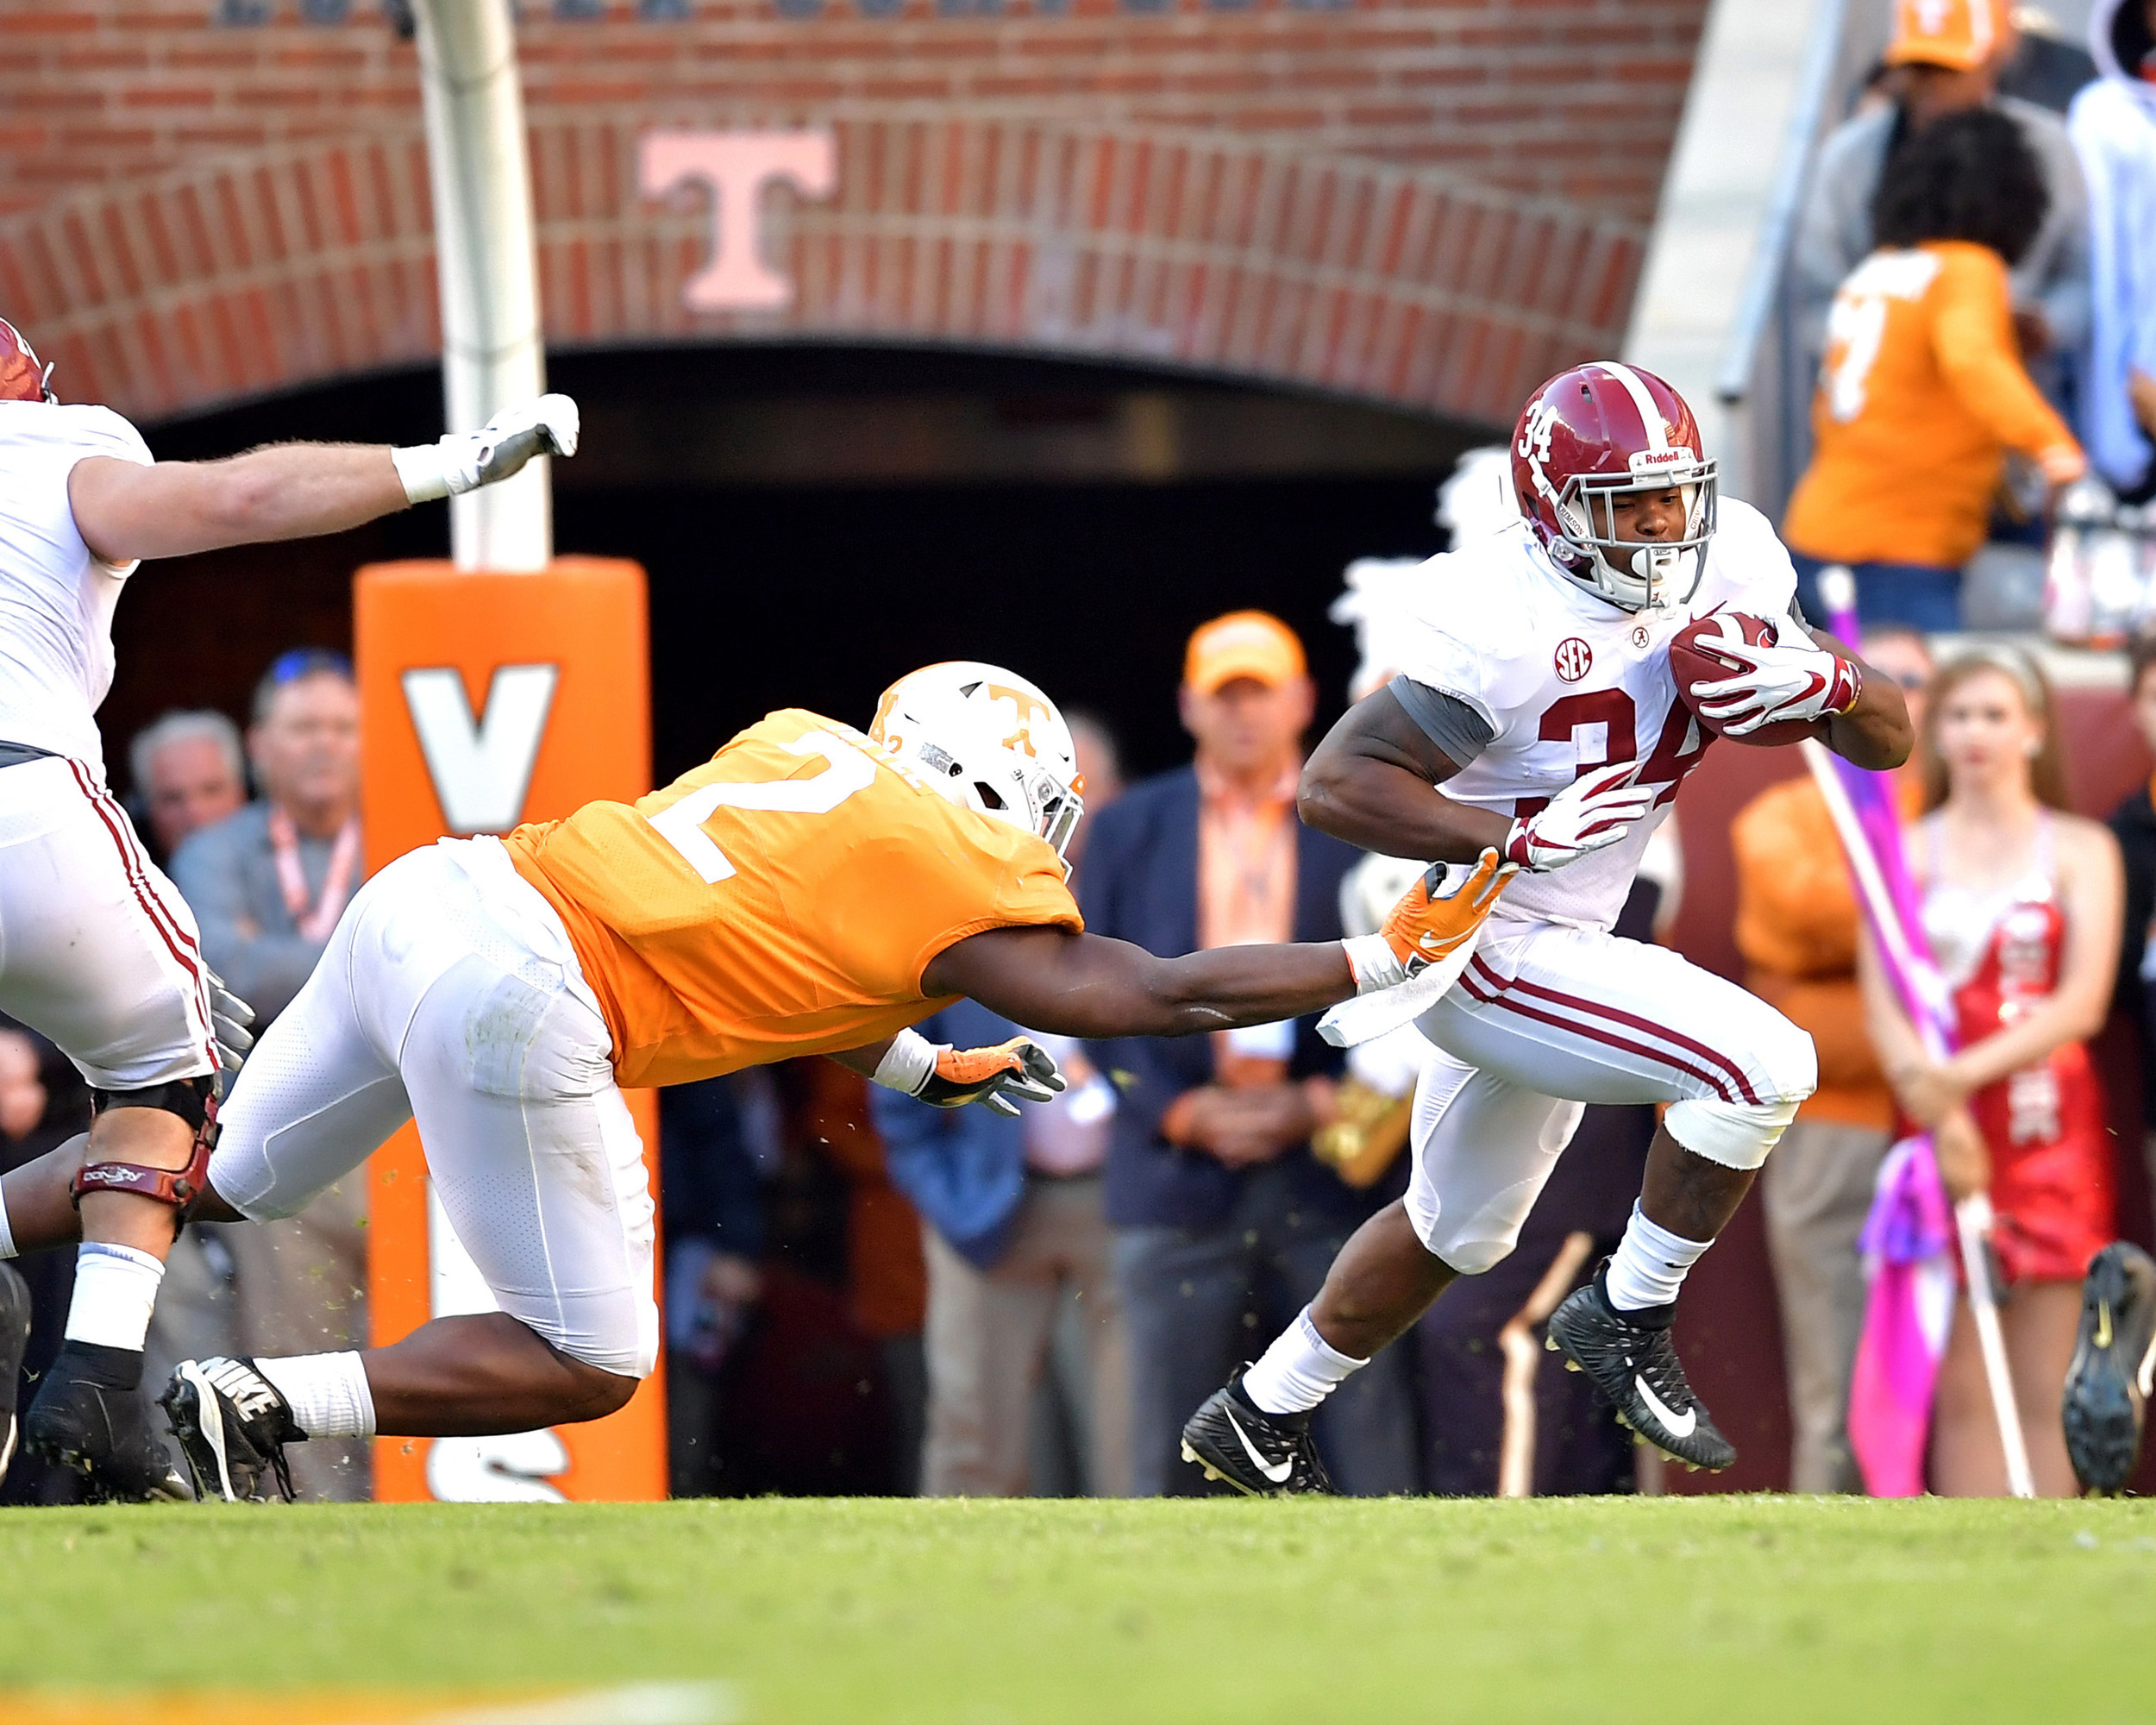 Alabama Crimson Tide running back Damien Harris (34) takes the handoff during the first hake half of the Alabama at Tennessee NCAA football game on Saturday, Oct. 20, 2018, at Neyland Stadium in Knoxville. Tenn. Alabama wins 58-21. (Photo by Lee Walls)